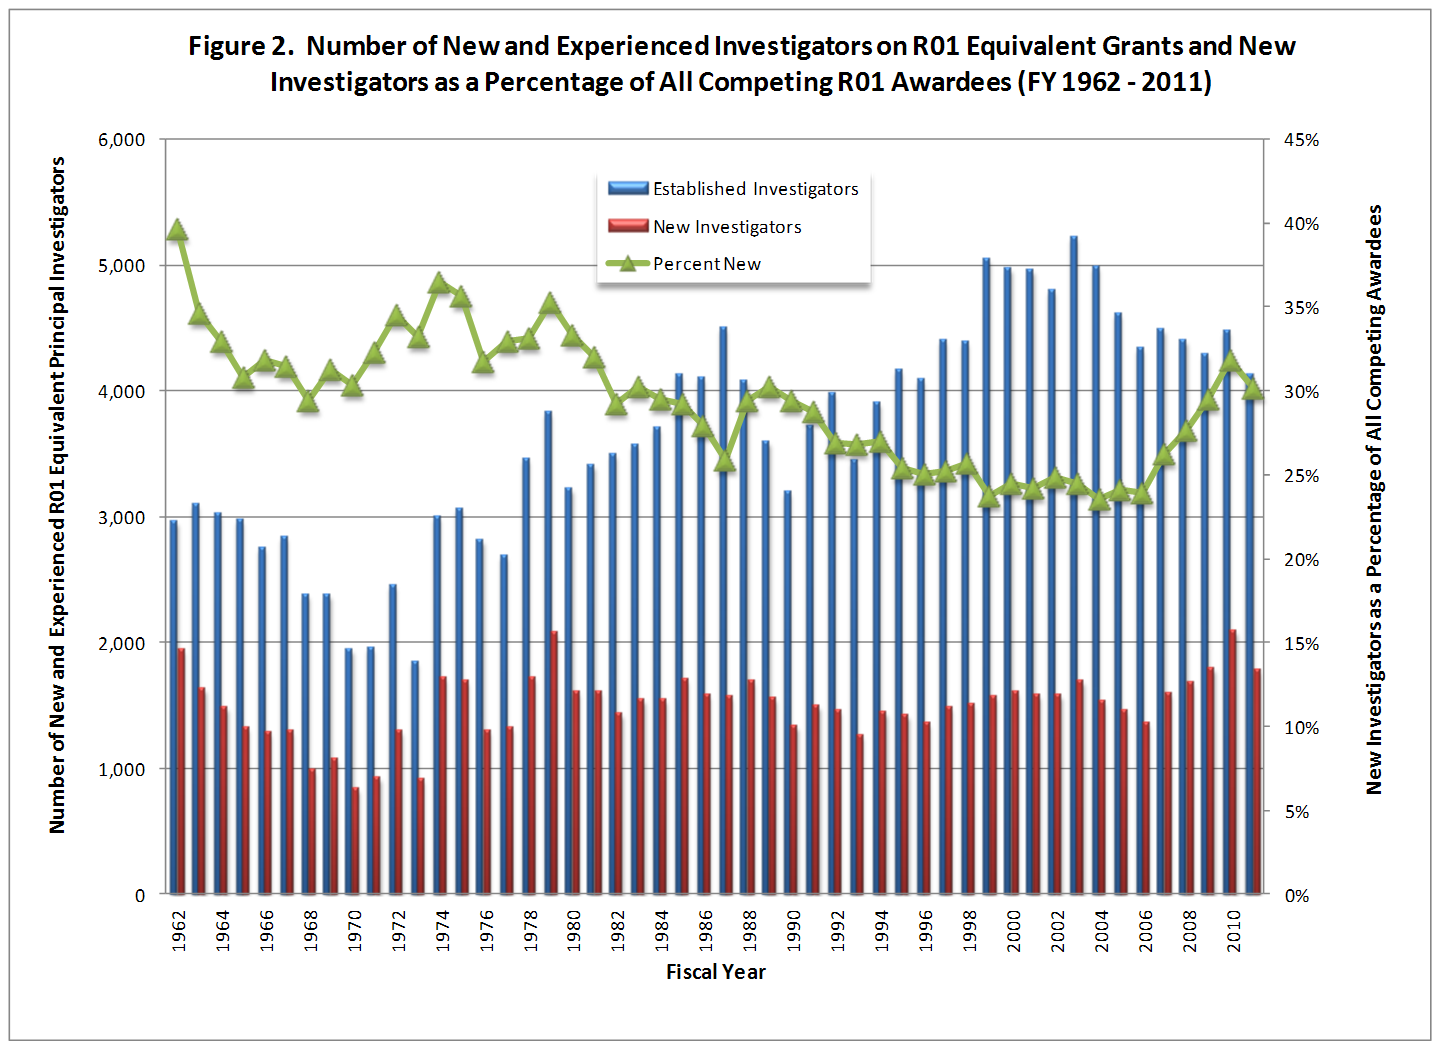 Number of new and experienced investigators on competing R01 grants showing the percent new fall from approximately 40% in 1962 to below 25% in the early 2000s.